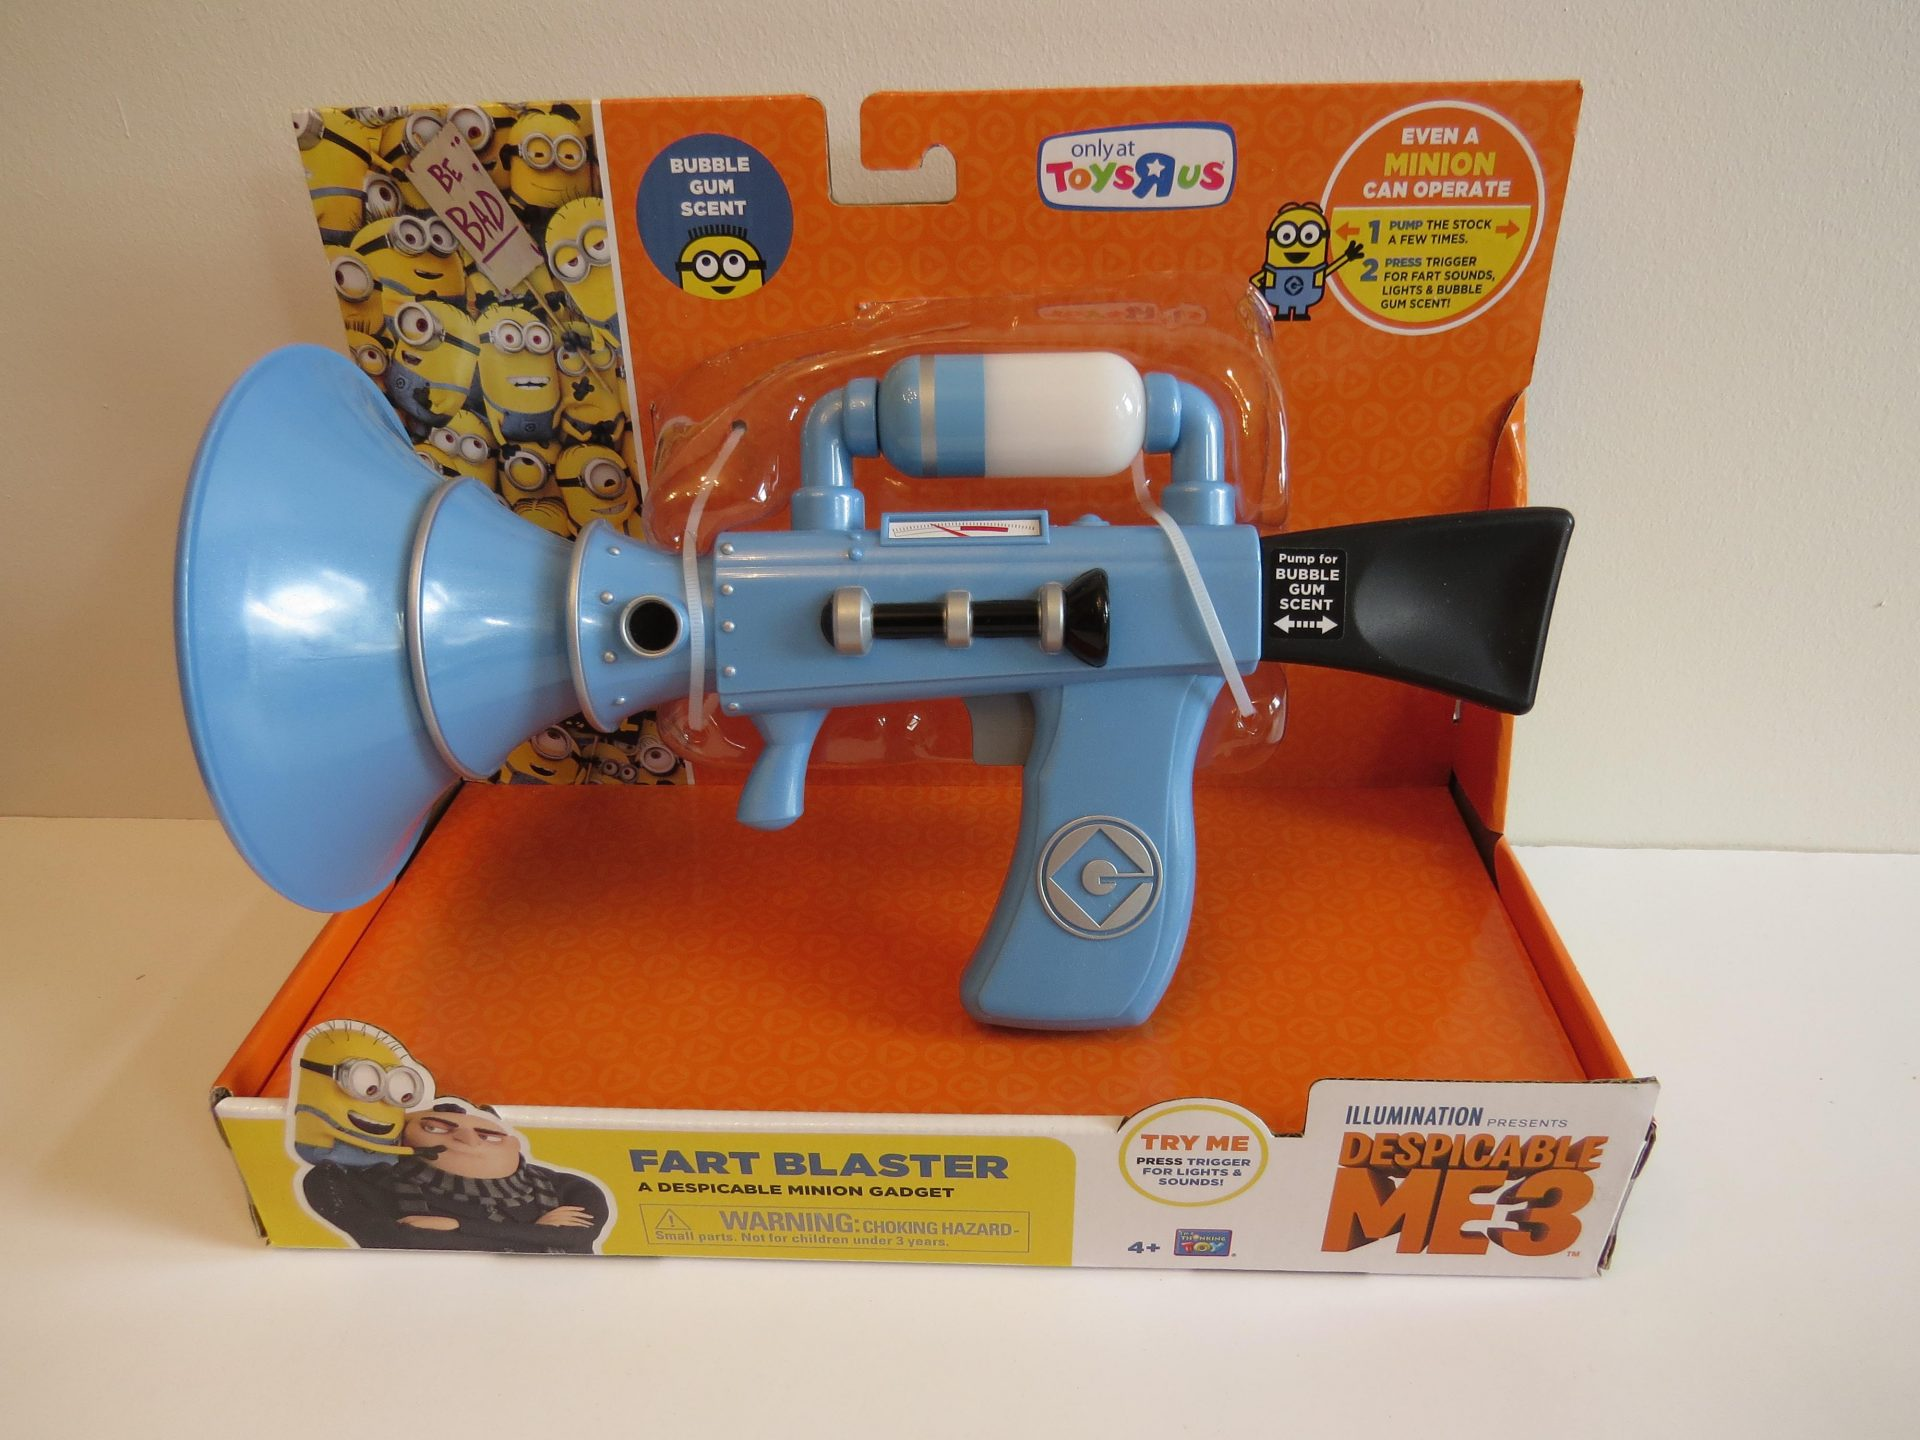 Despicable Me Fart Blaster Guns in Stock